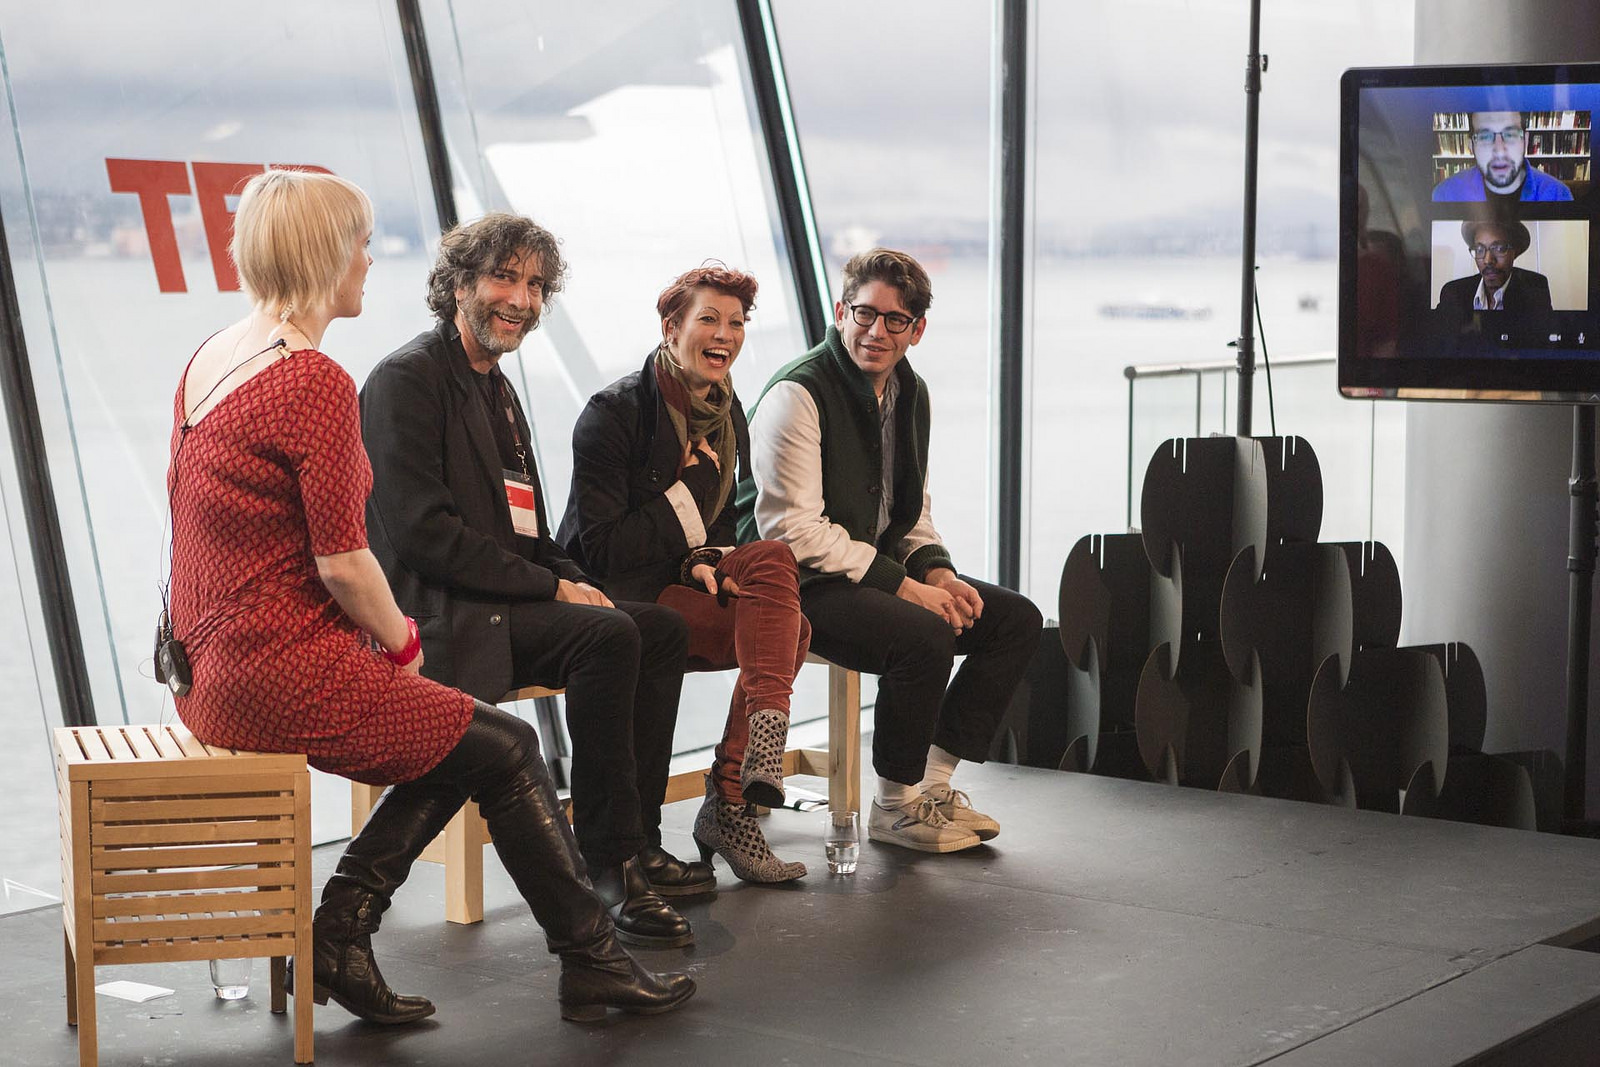 At the Skype Studio, Helen Walters interviews Neil Gaiman, Amanda Palmer and many others about Connection, Crowd-funding and Creativity. Photo: Bret Hartman